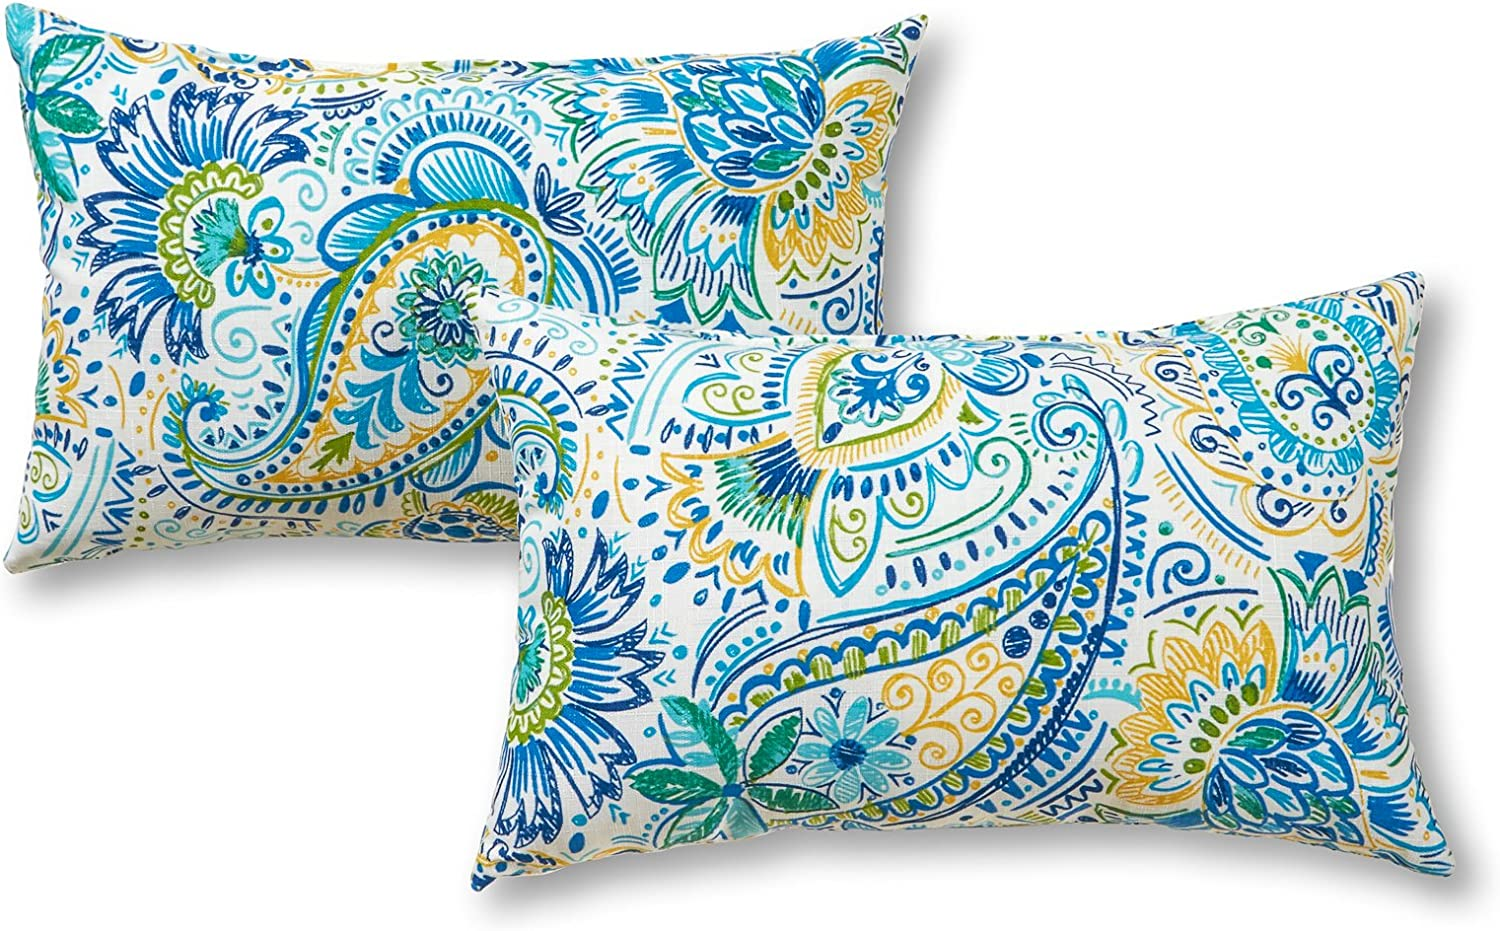 Greendale Home Fashions AZ5811S2-BALTIC Paisley Outdoor Rectangle Throw Pillow (Set of 2)